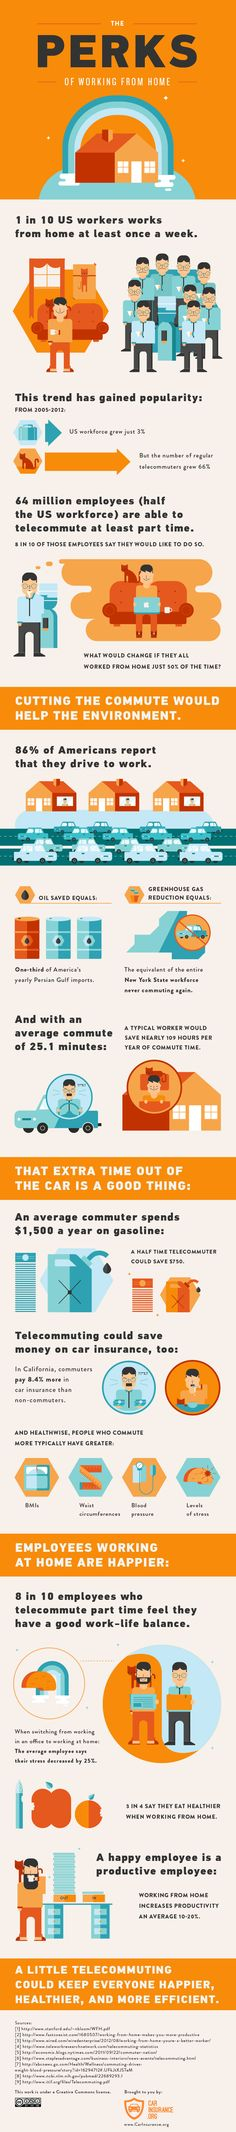 The Perks of Working From Home, by CarInsurance.org -- There's just something inspiring about an infographic that brings together everything we think about working from home. Let this infographic remind of you all the great reasons to work from home! -- http://www.flexjobs.com/blog/post/infographic-the-perks-of-working-from-home/#